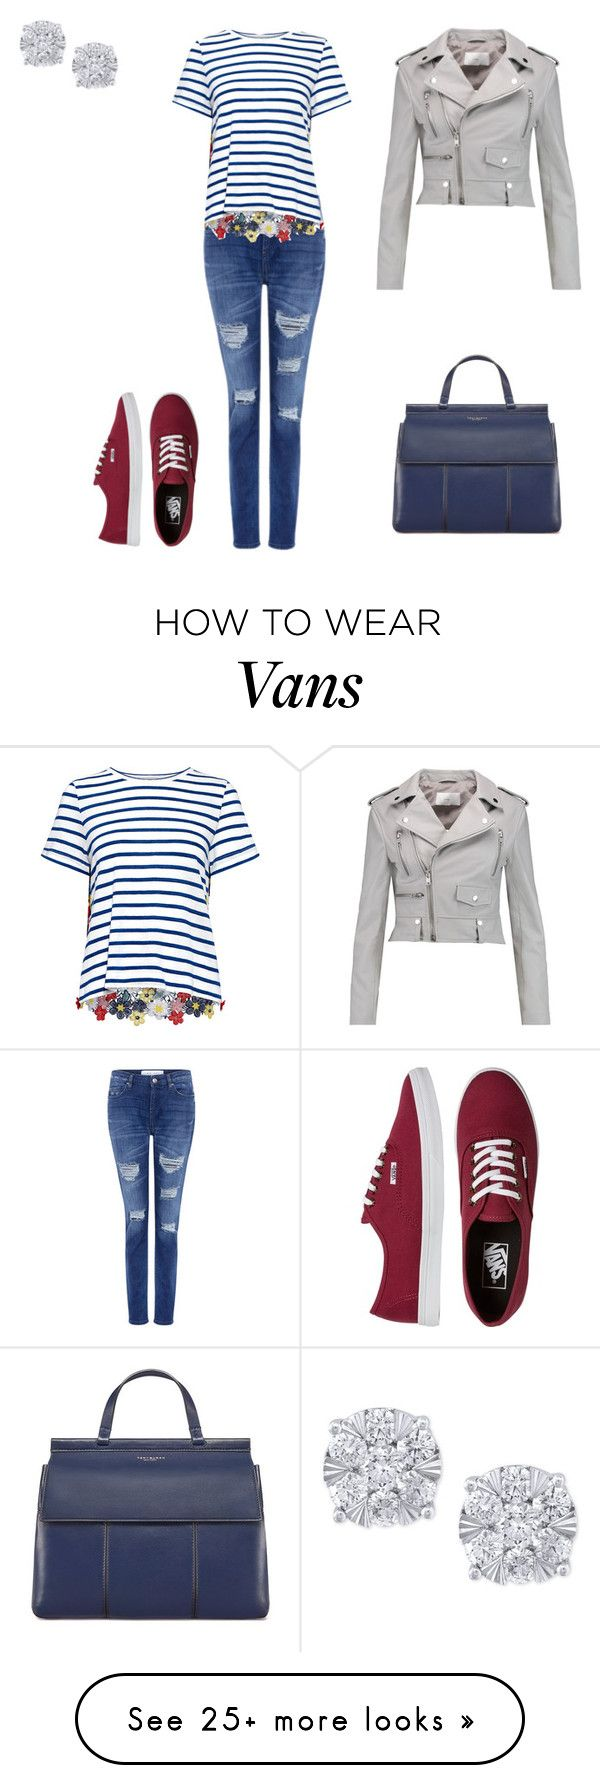 """""""Untitled #154"""" by silentpoetgeek on Polyvore featuring IRO, Sea, New York, Vans, W118 by Walter Baker, Tory Burch and Effy Jewelry"""